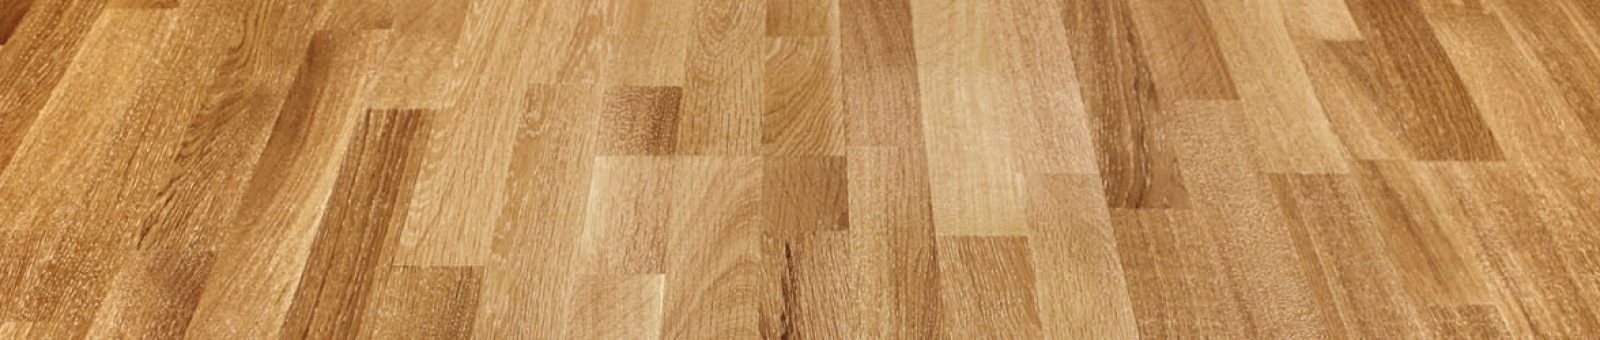 A Clean Wood Floor Creates Healthier Happier And More Spectacular Home